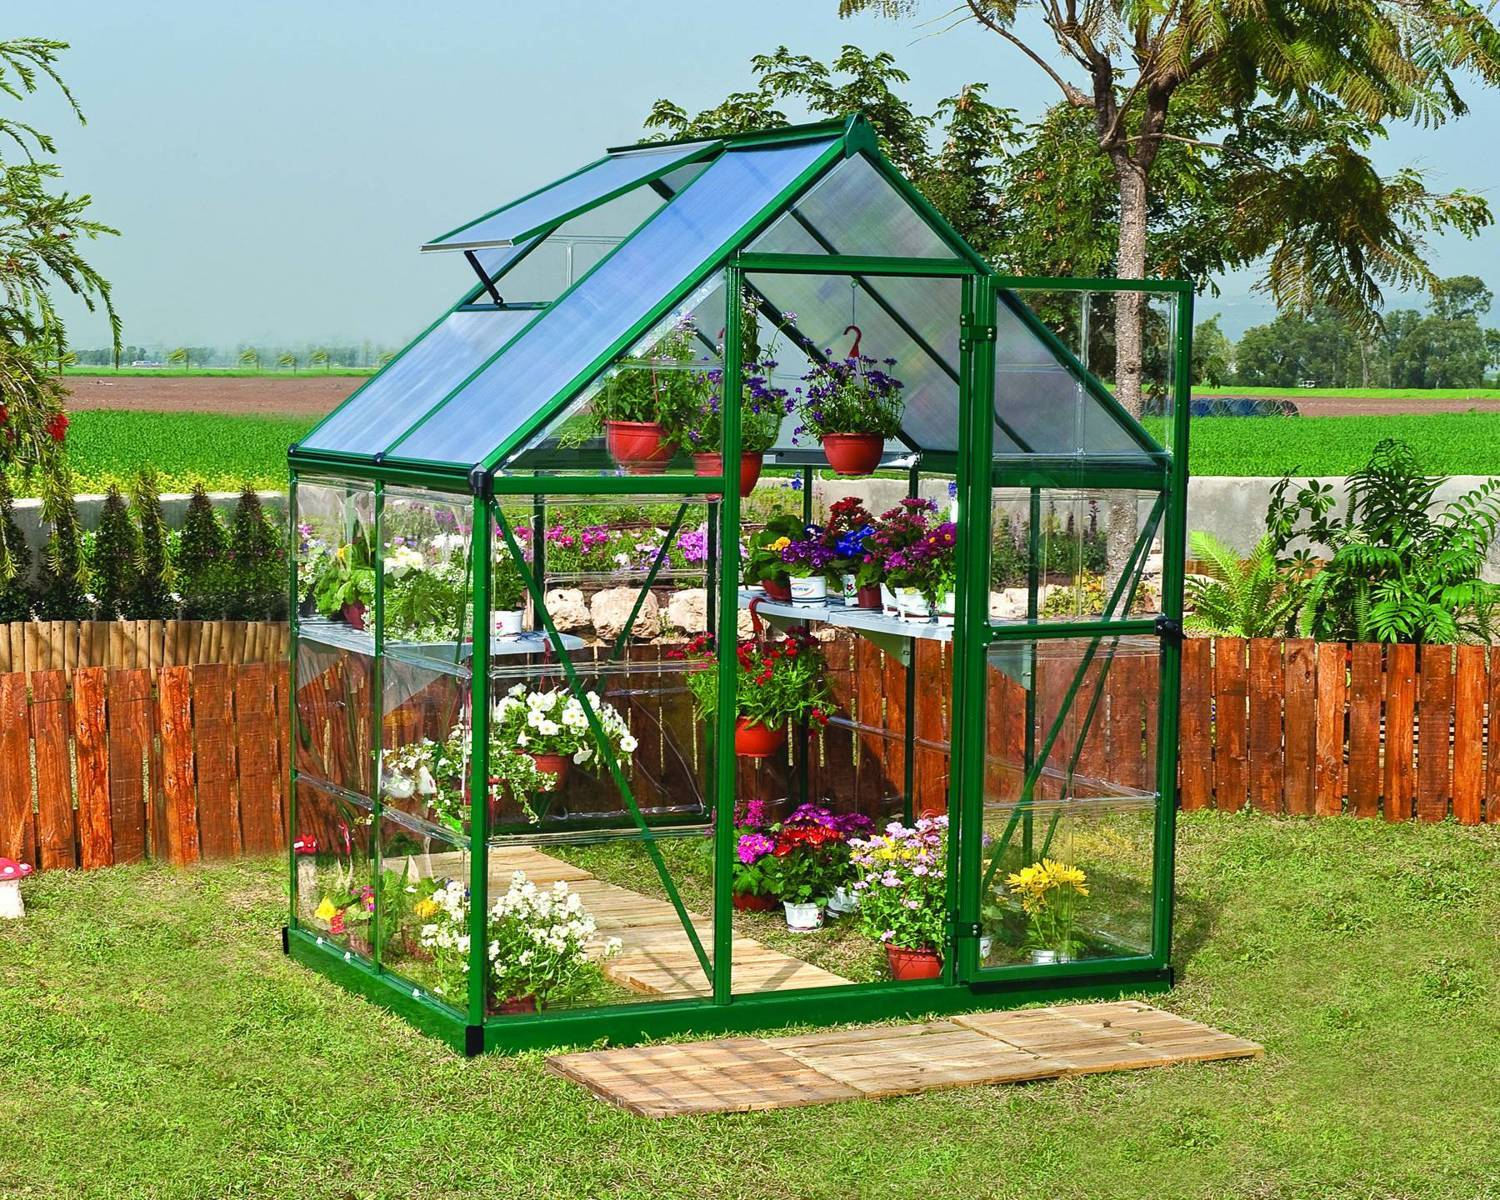 palram hybrid 6x4 green polycarbonate greenhouse. Black Bedroom Furniture Sets. Home Design Ideas